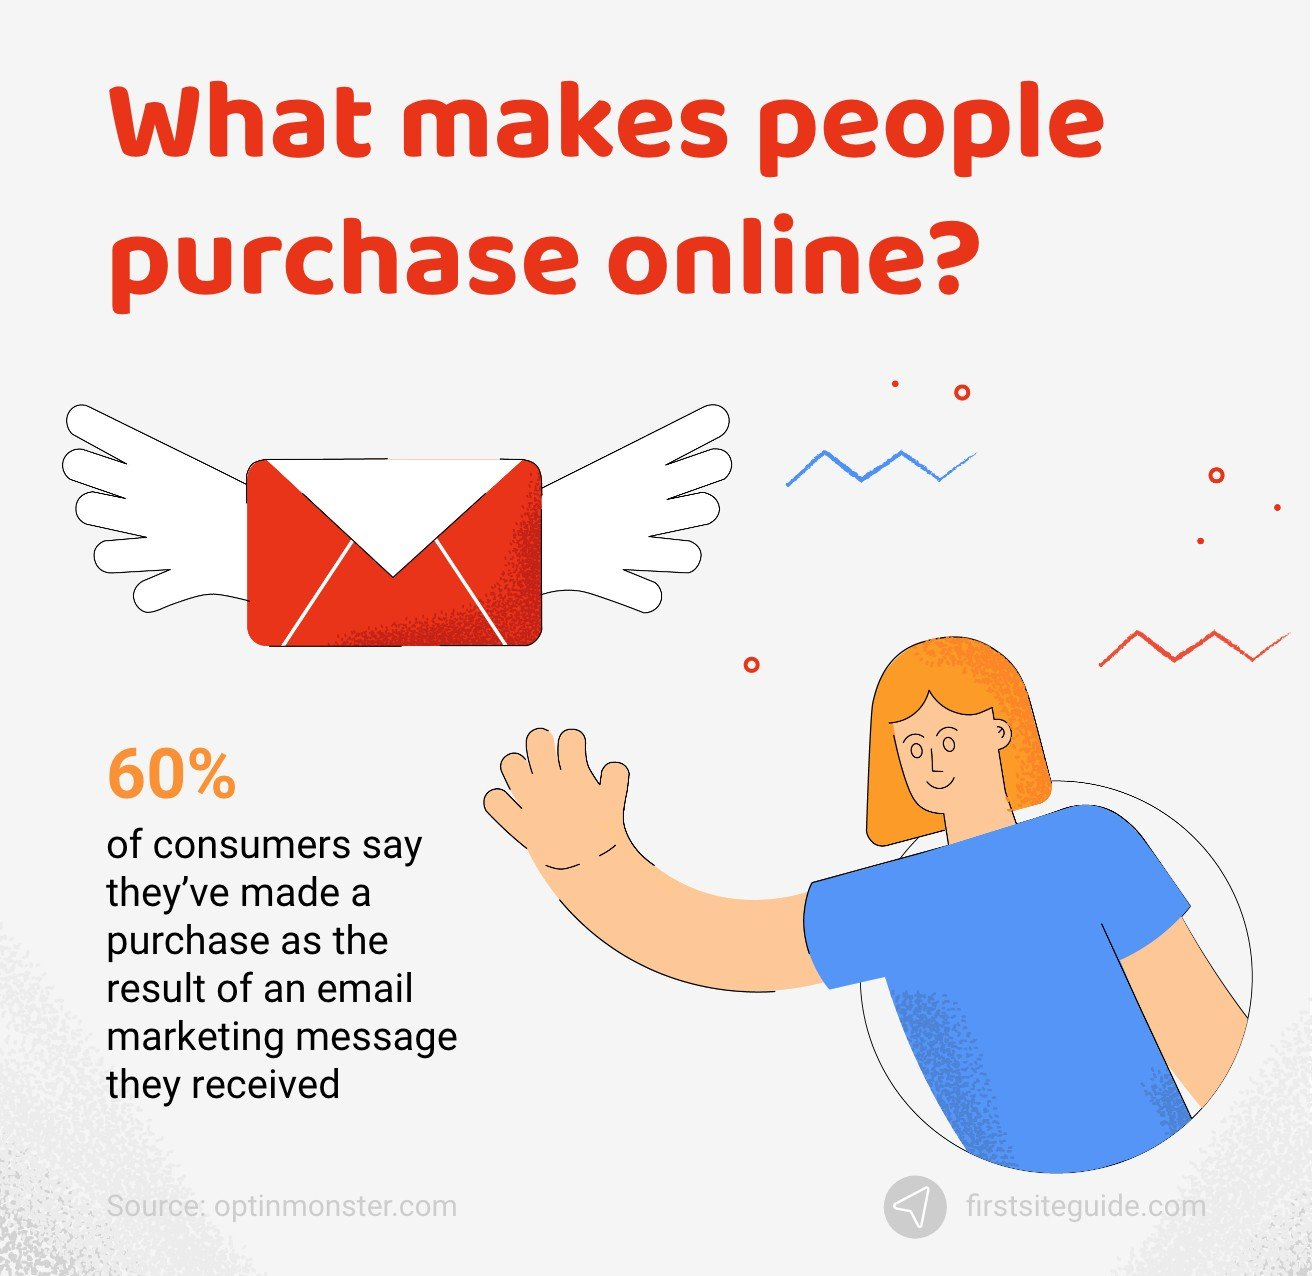 What makes people purchase online